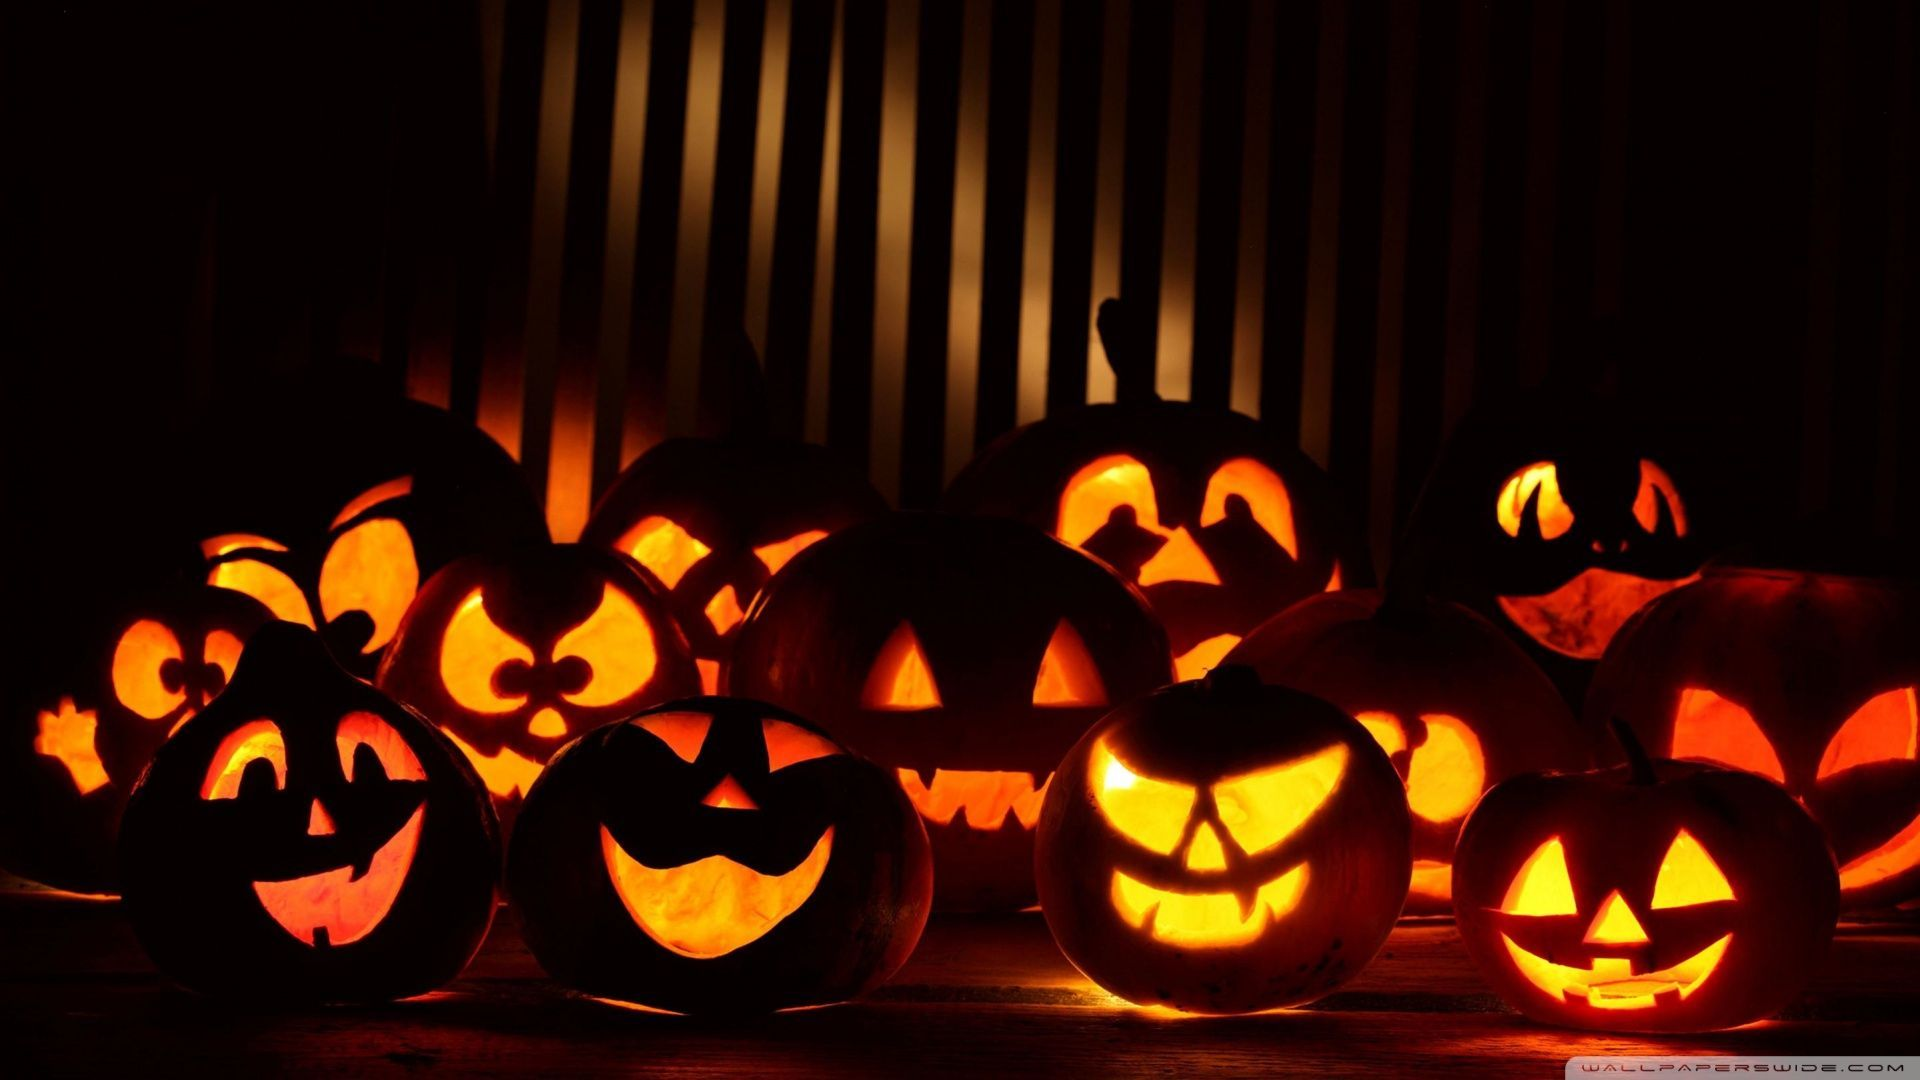 1920x1080 40+ Halloween HD Wallpapers - Download at WallpaperBro